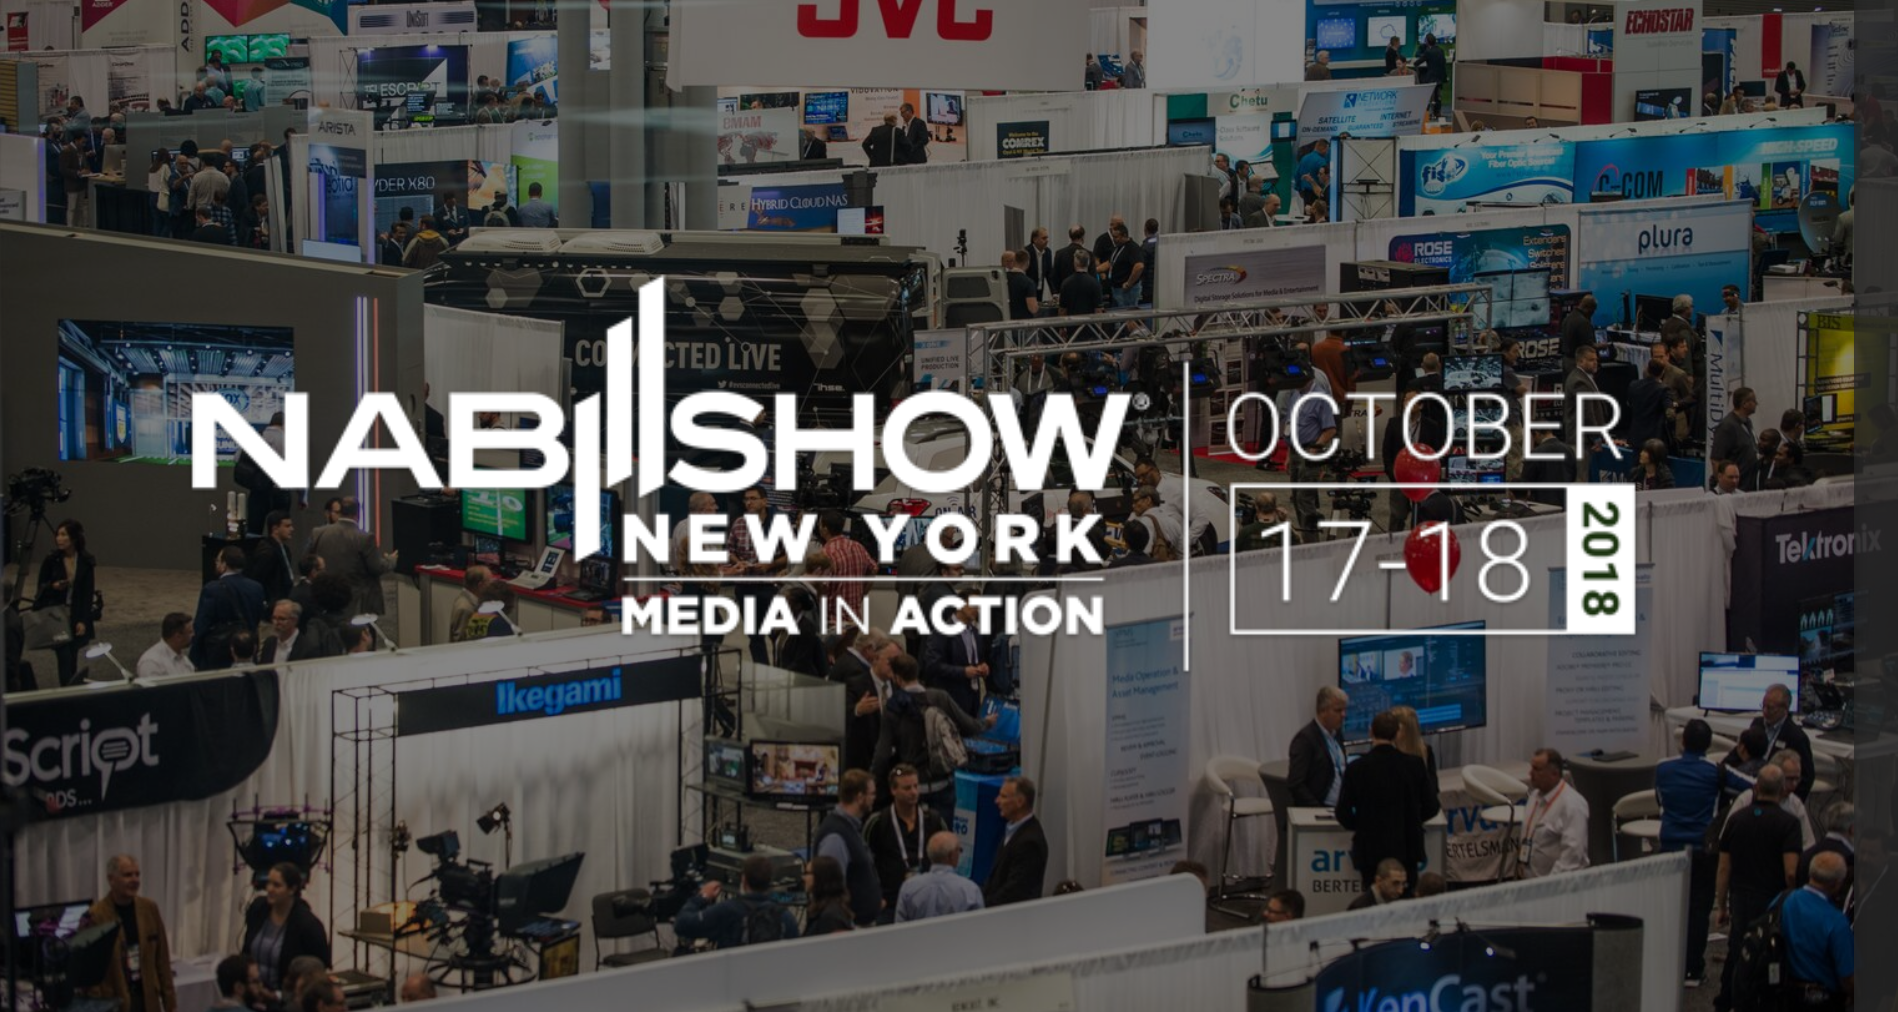 NAB Show New York - Media In Action October 17-18 2018